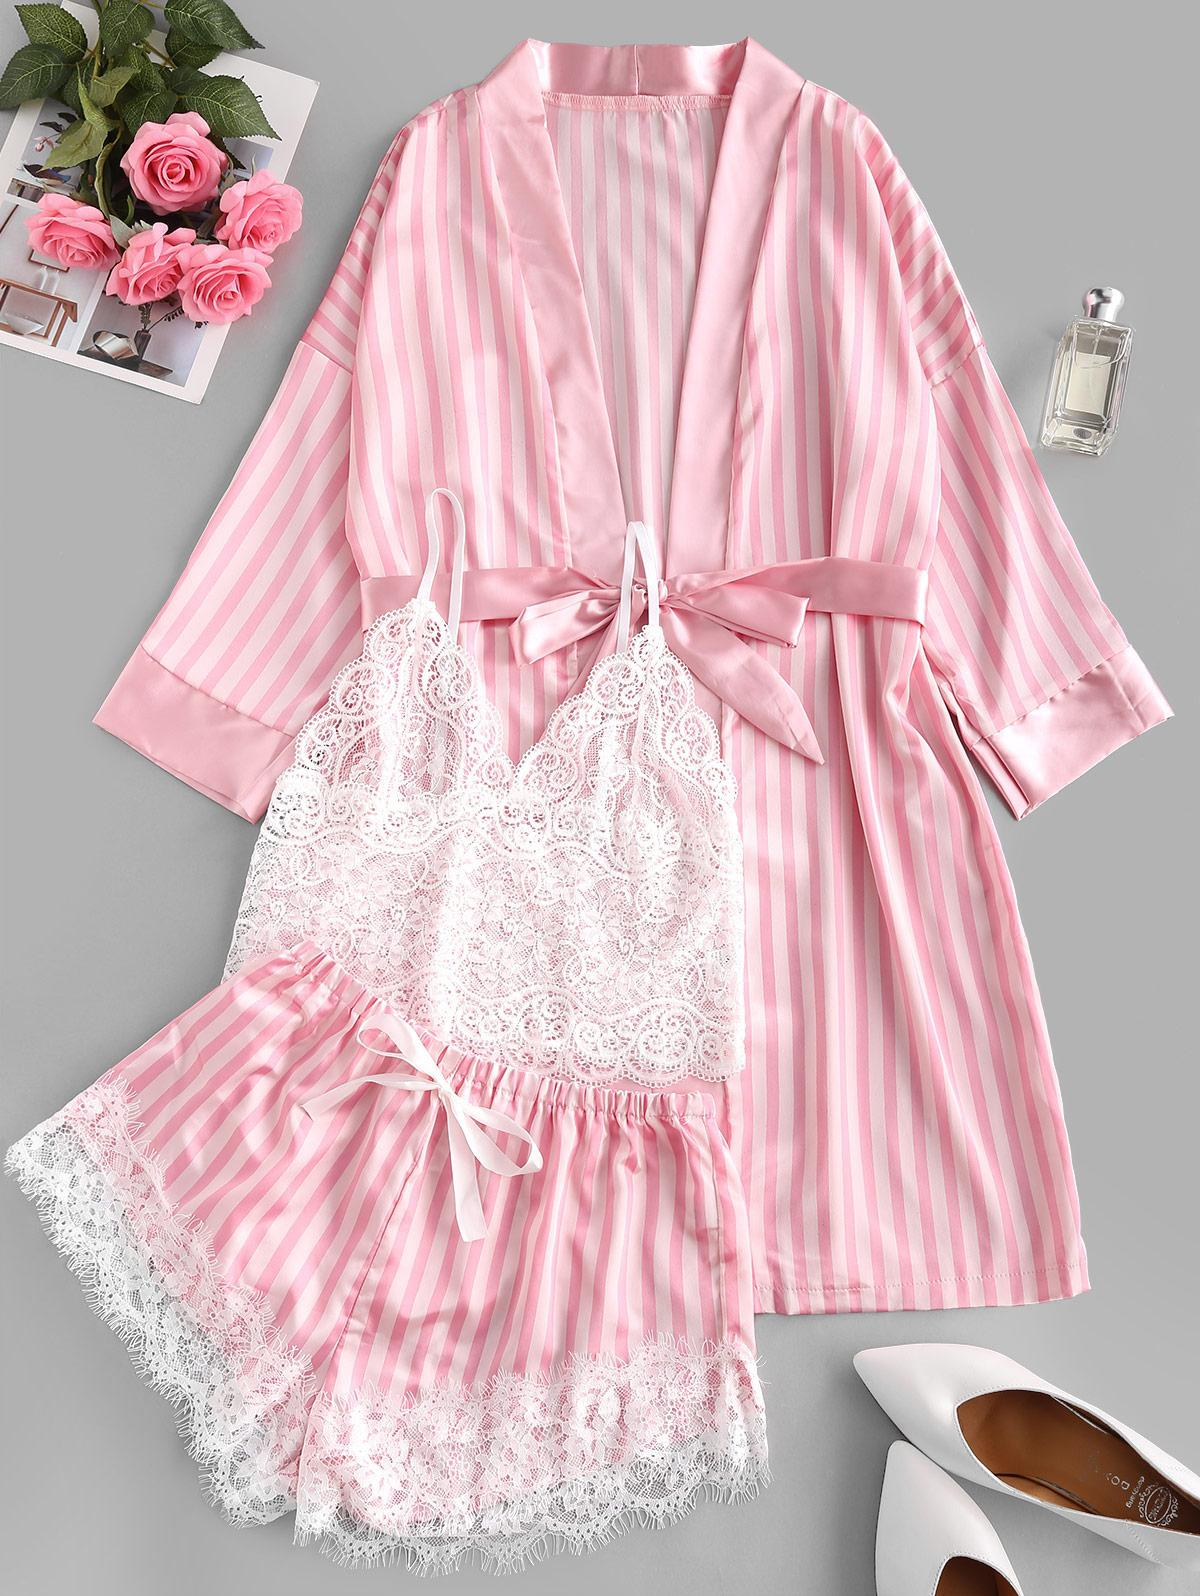 Striped Satin Lace Panel Eyelash PJ Set with Robe